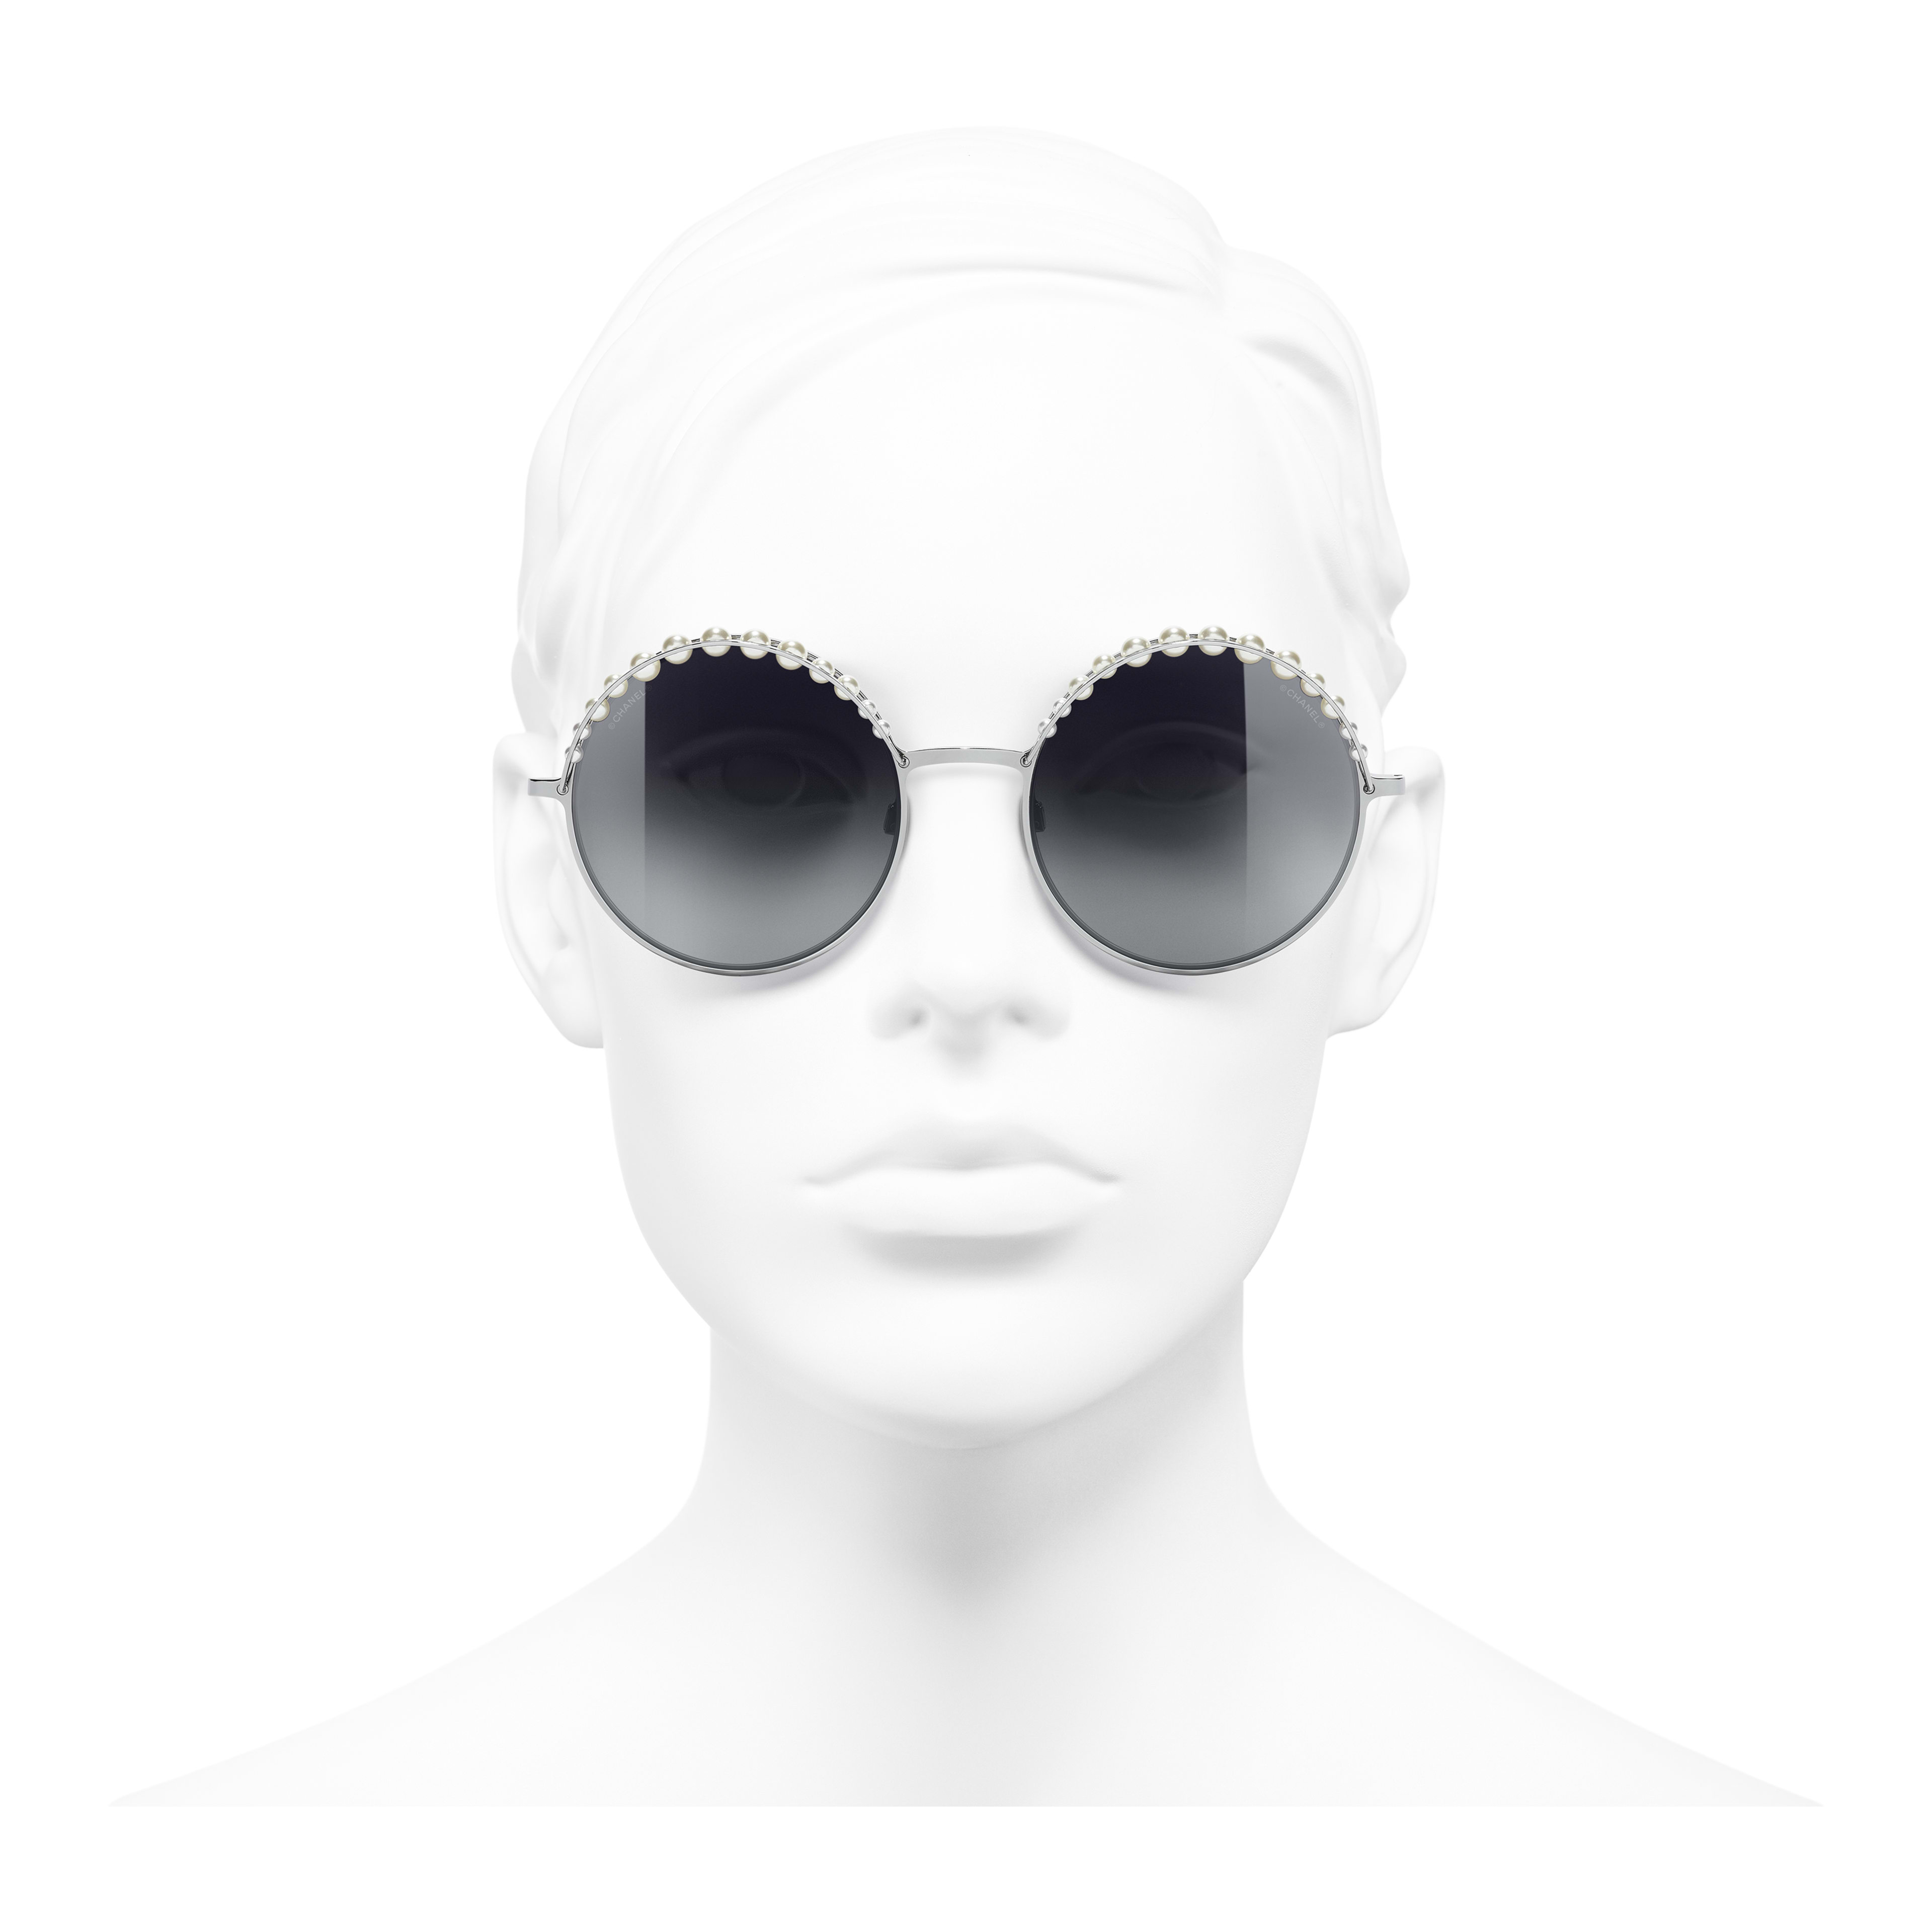 Round Sunglasses Metal & Imitation Pearls Silver -                                                                     view 2 - see full sized version